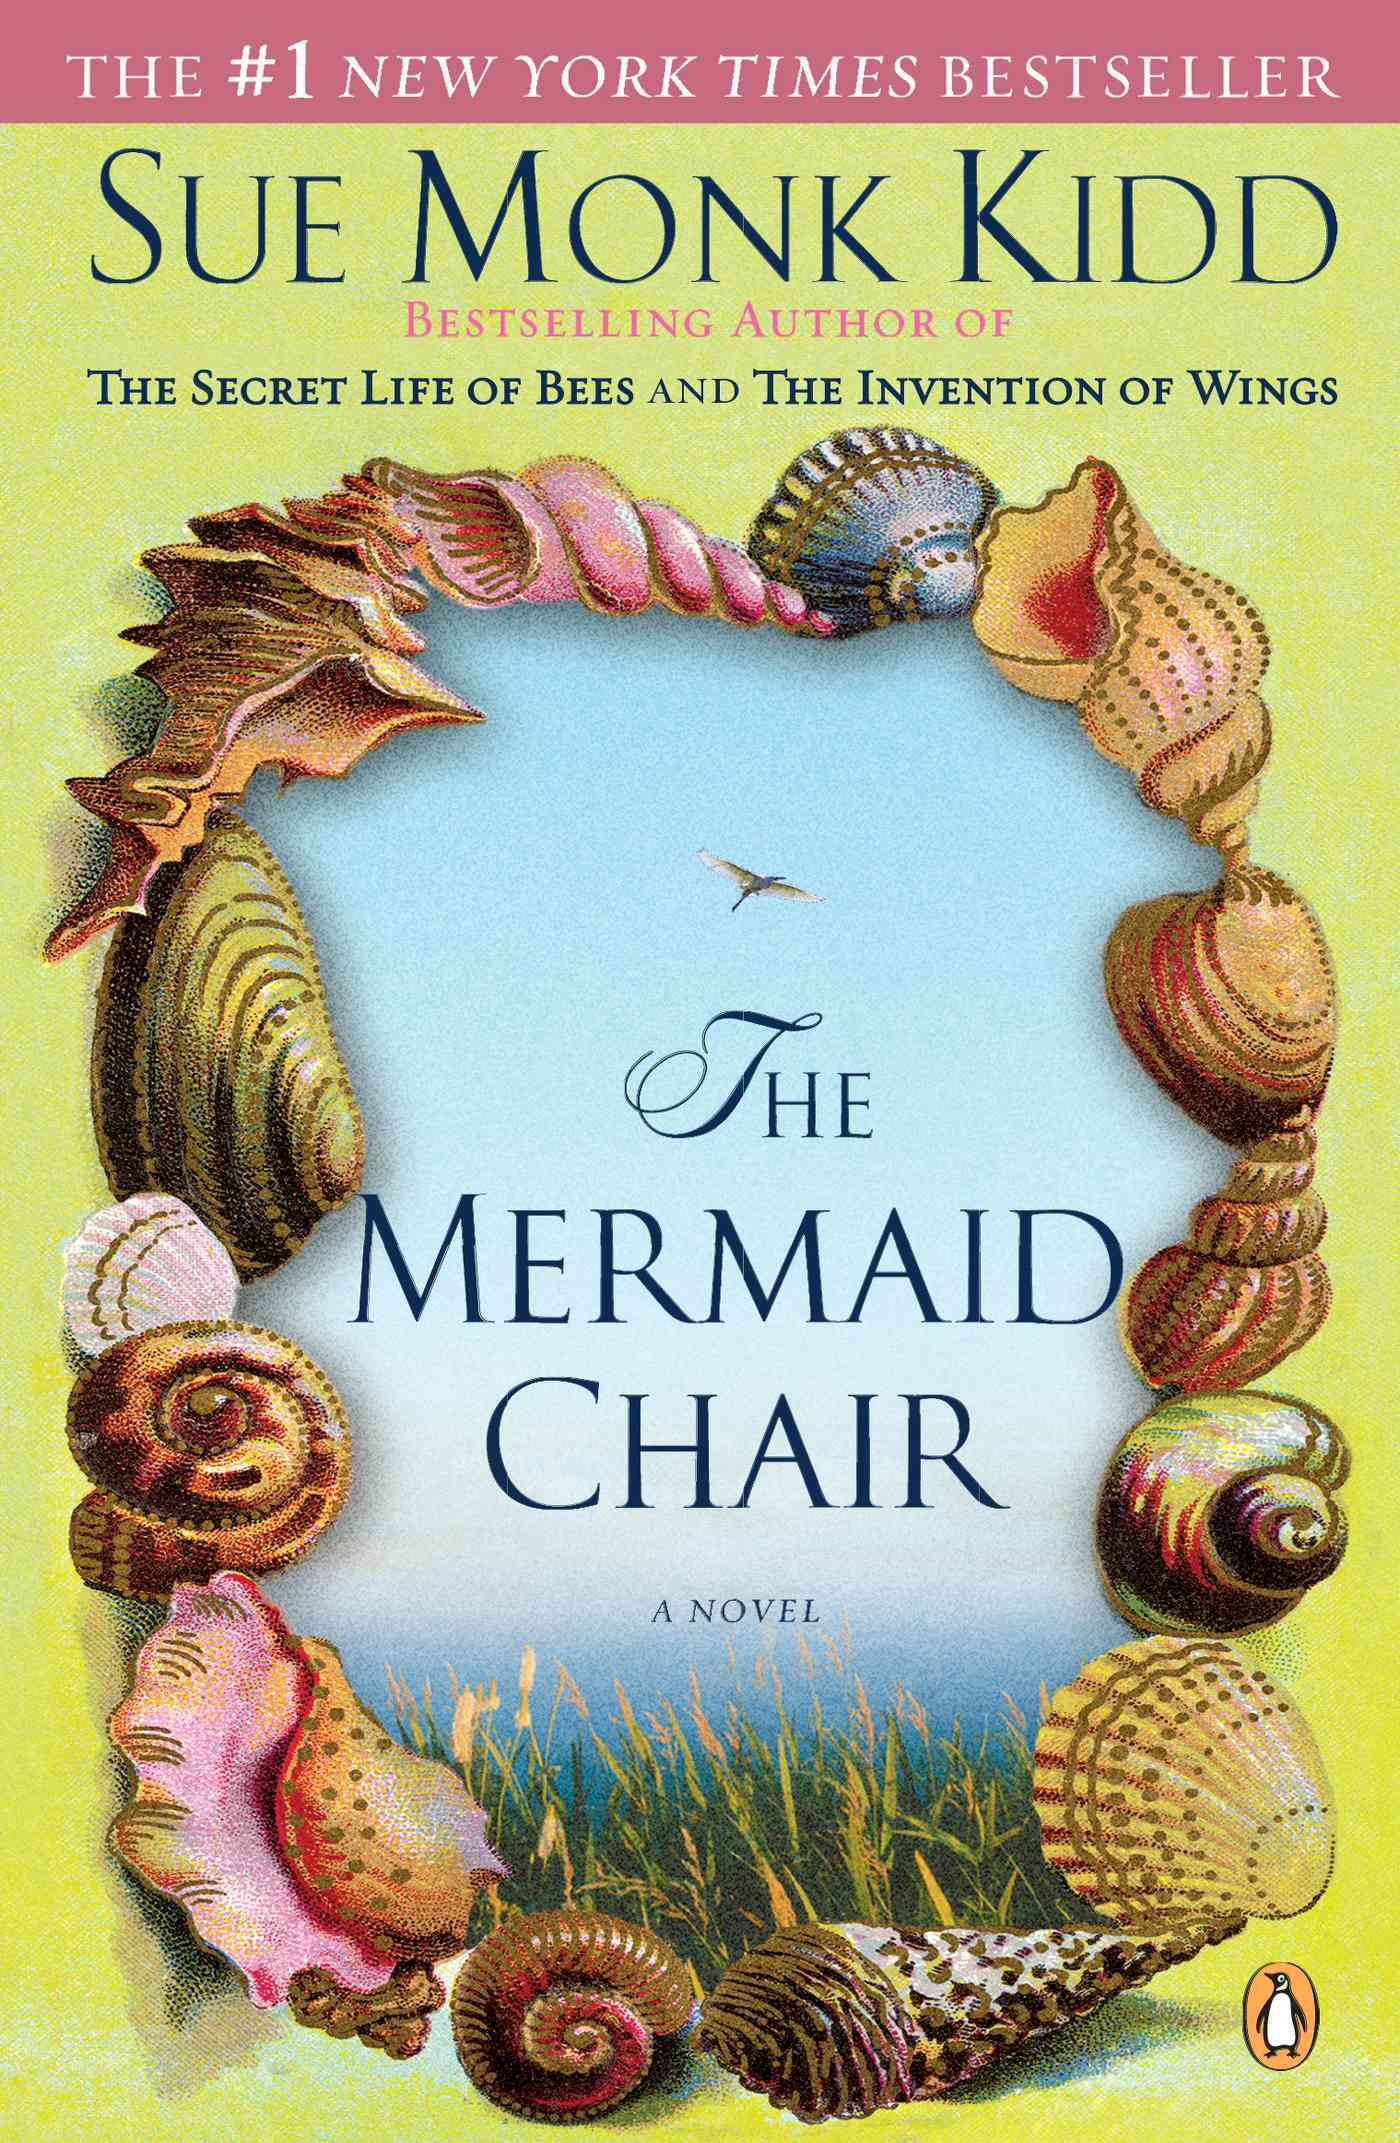 The Mermaid Chair By Kidd, Sue Monk